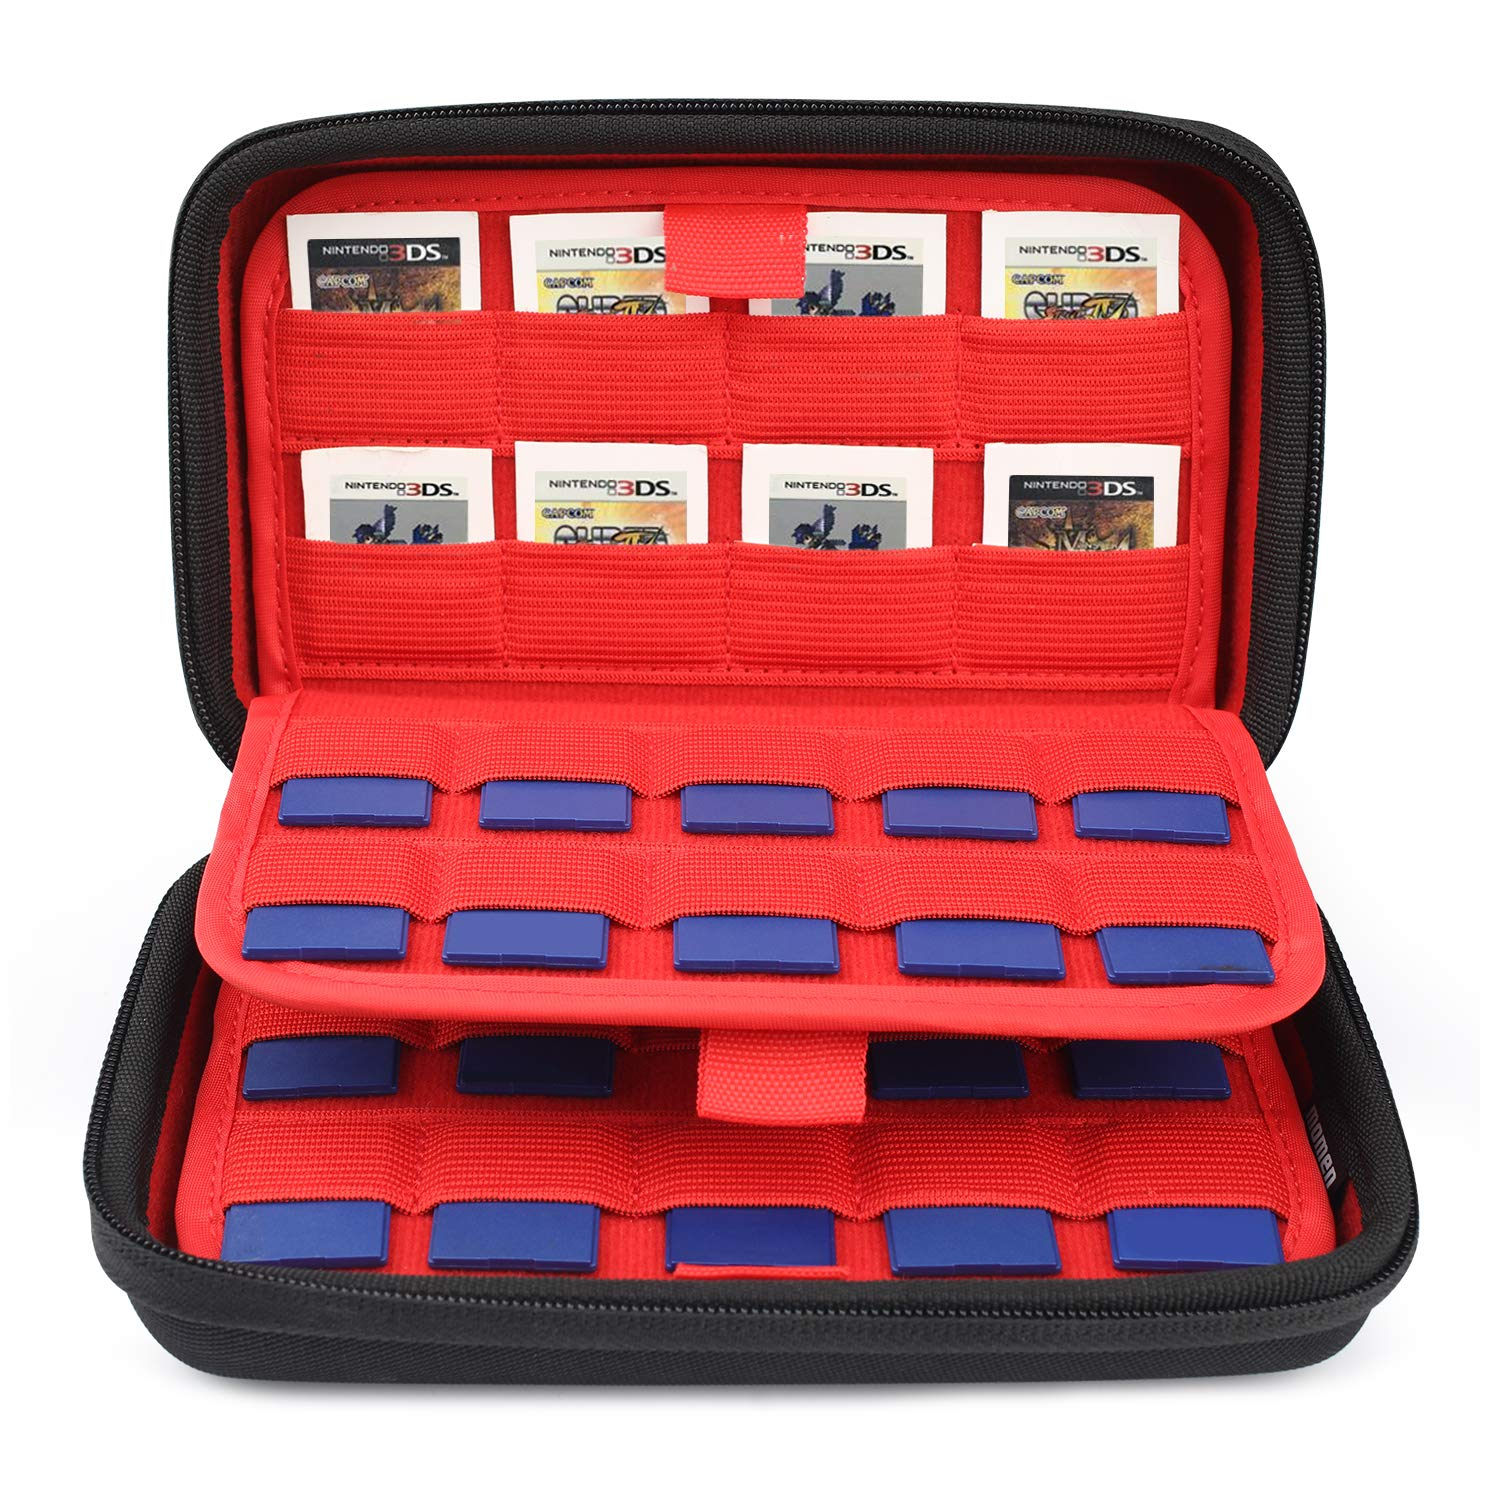 Nintendo Switch Game Cartridge Case - Nintendo DS Cases Storage, SD Memory Cards with 72 Game Cartridge Card Storage Case for Nintendo Switch 3DS/2DS, Ps Vita Game